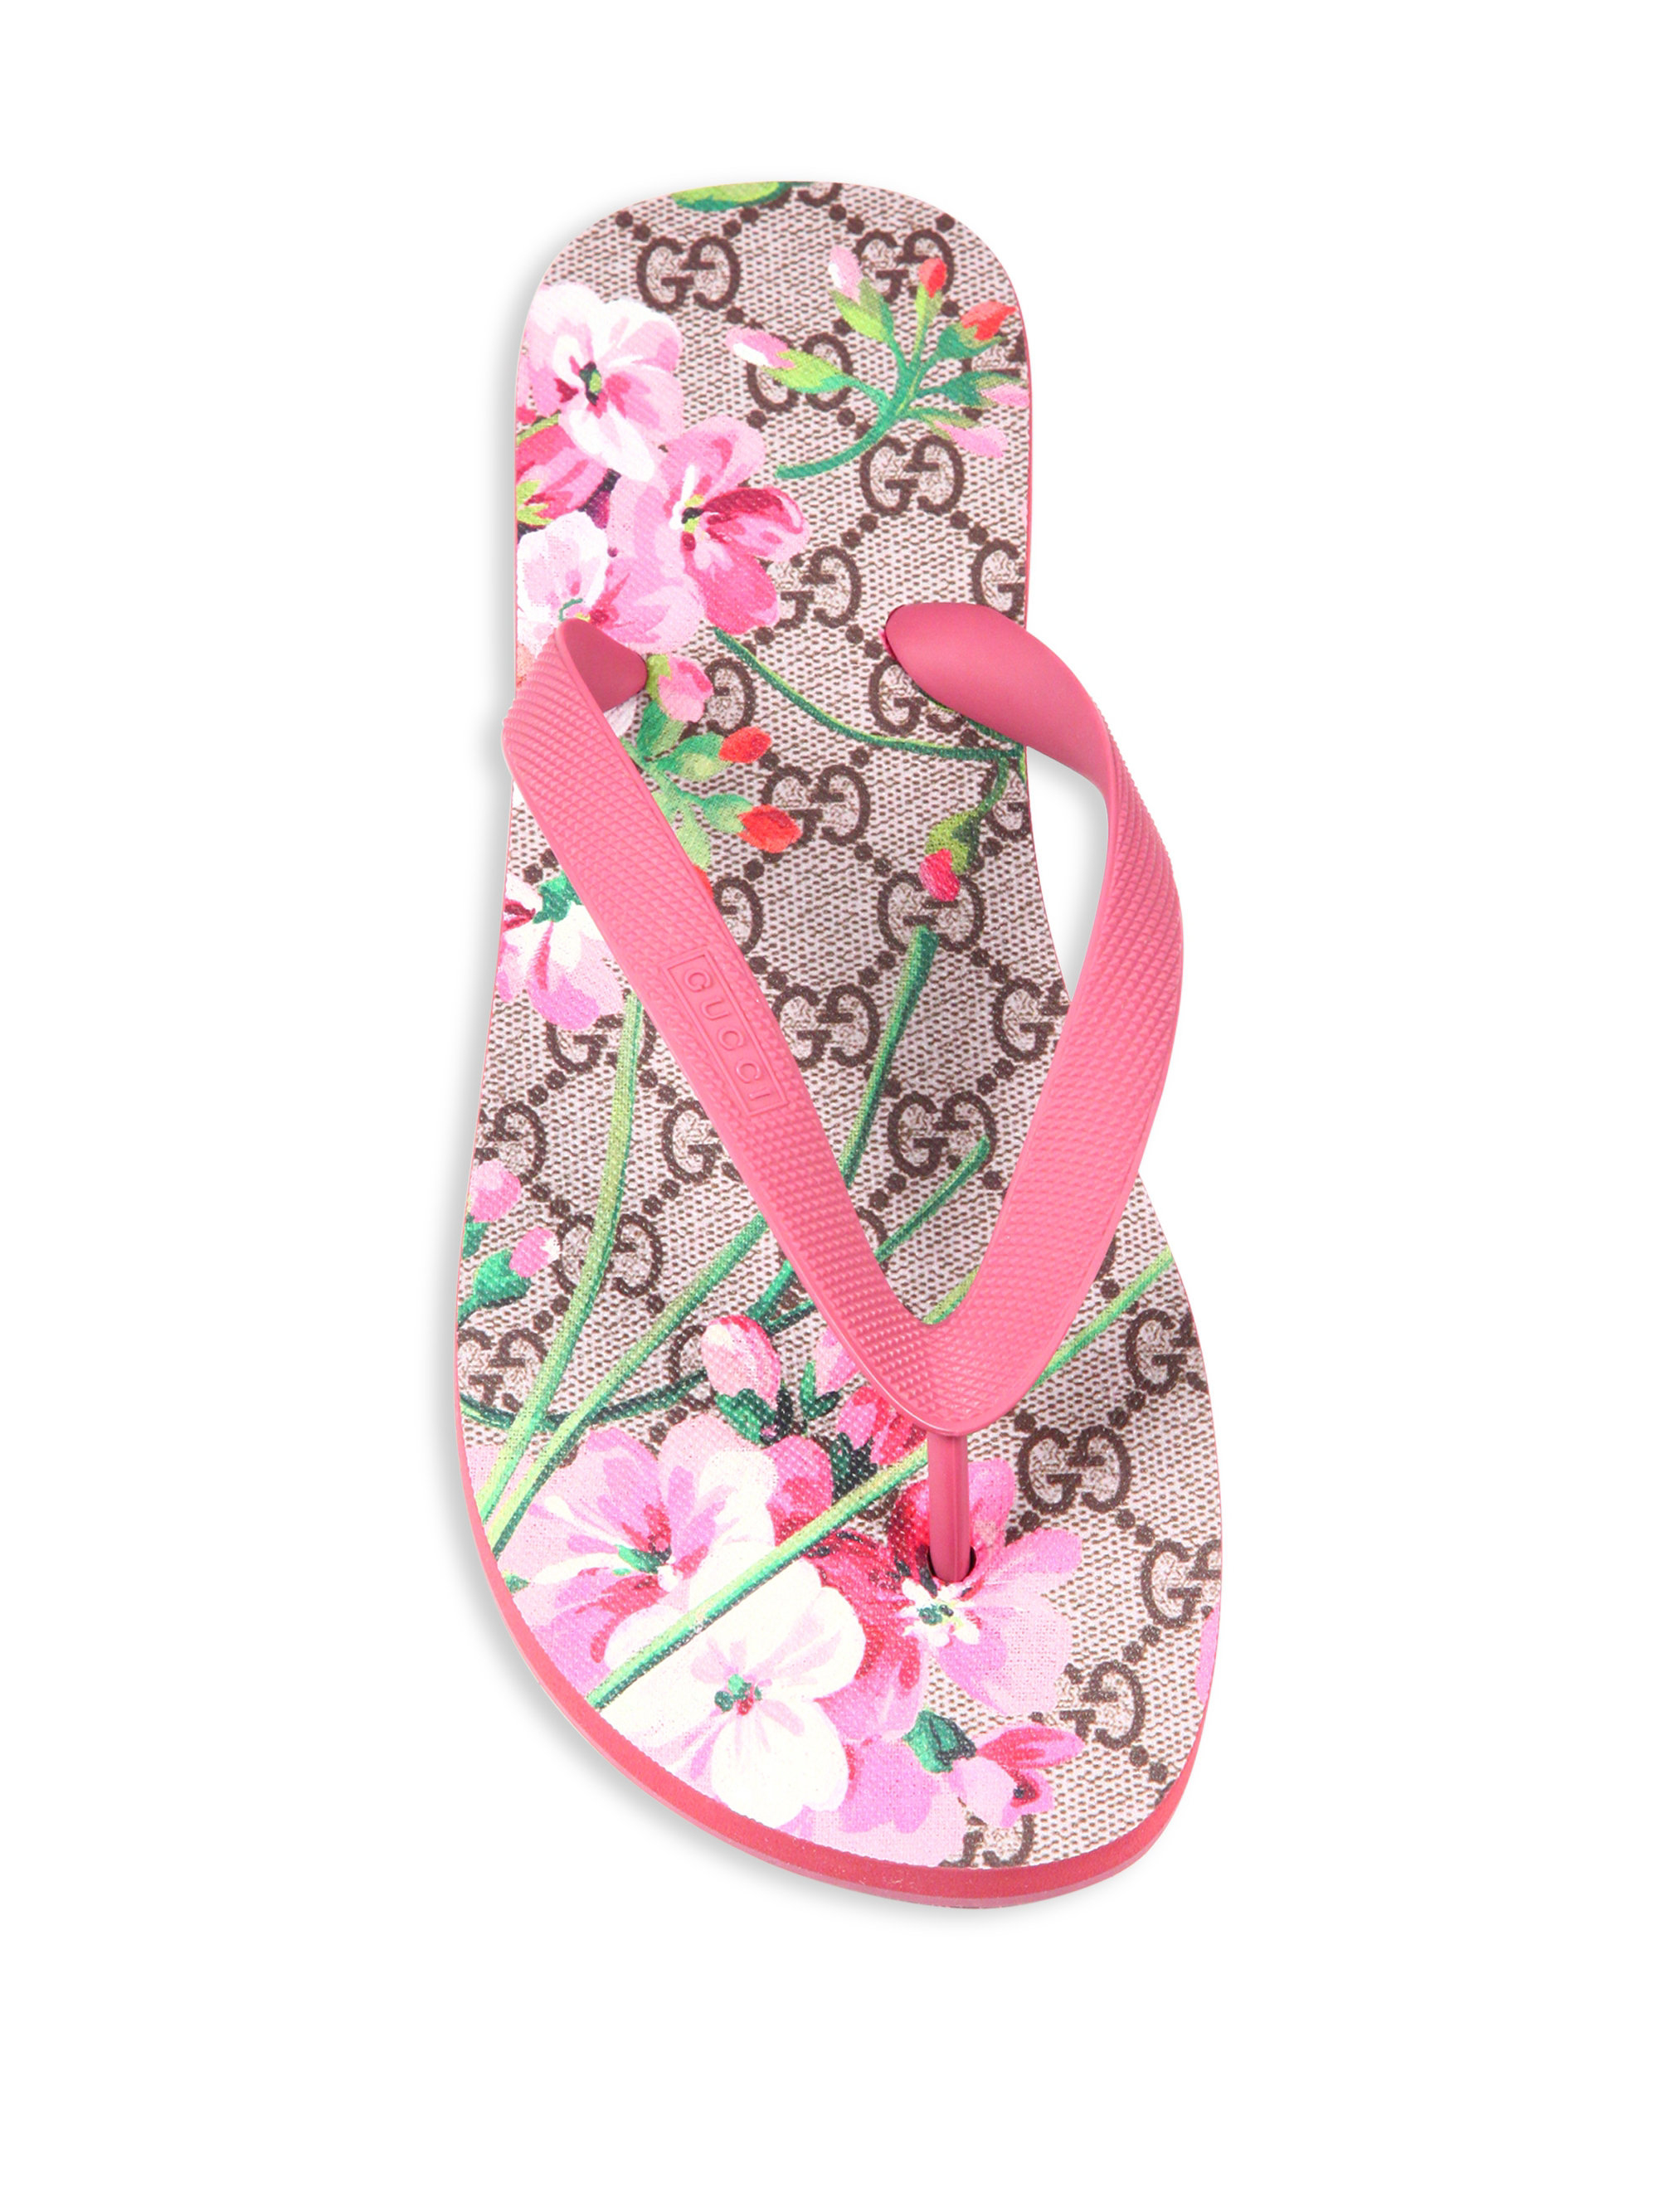 4a223a4577b752 Lyst - Gucci Gg Bloom Rubber Flip Flops in Pink